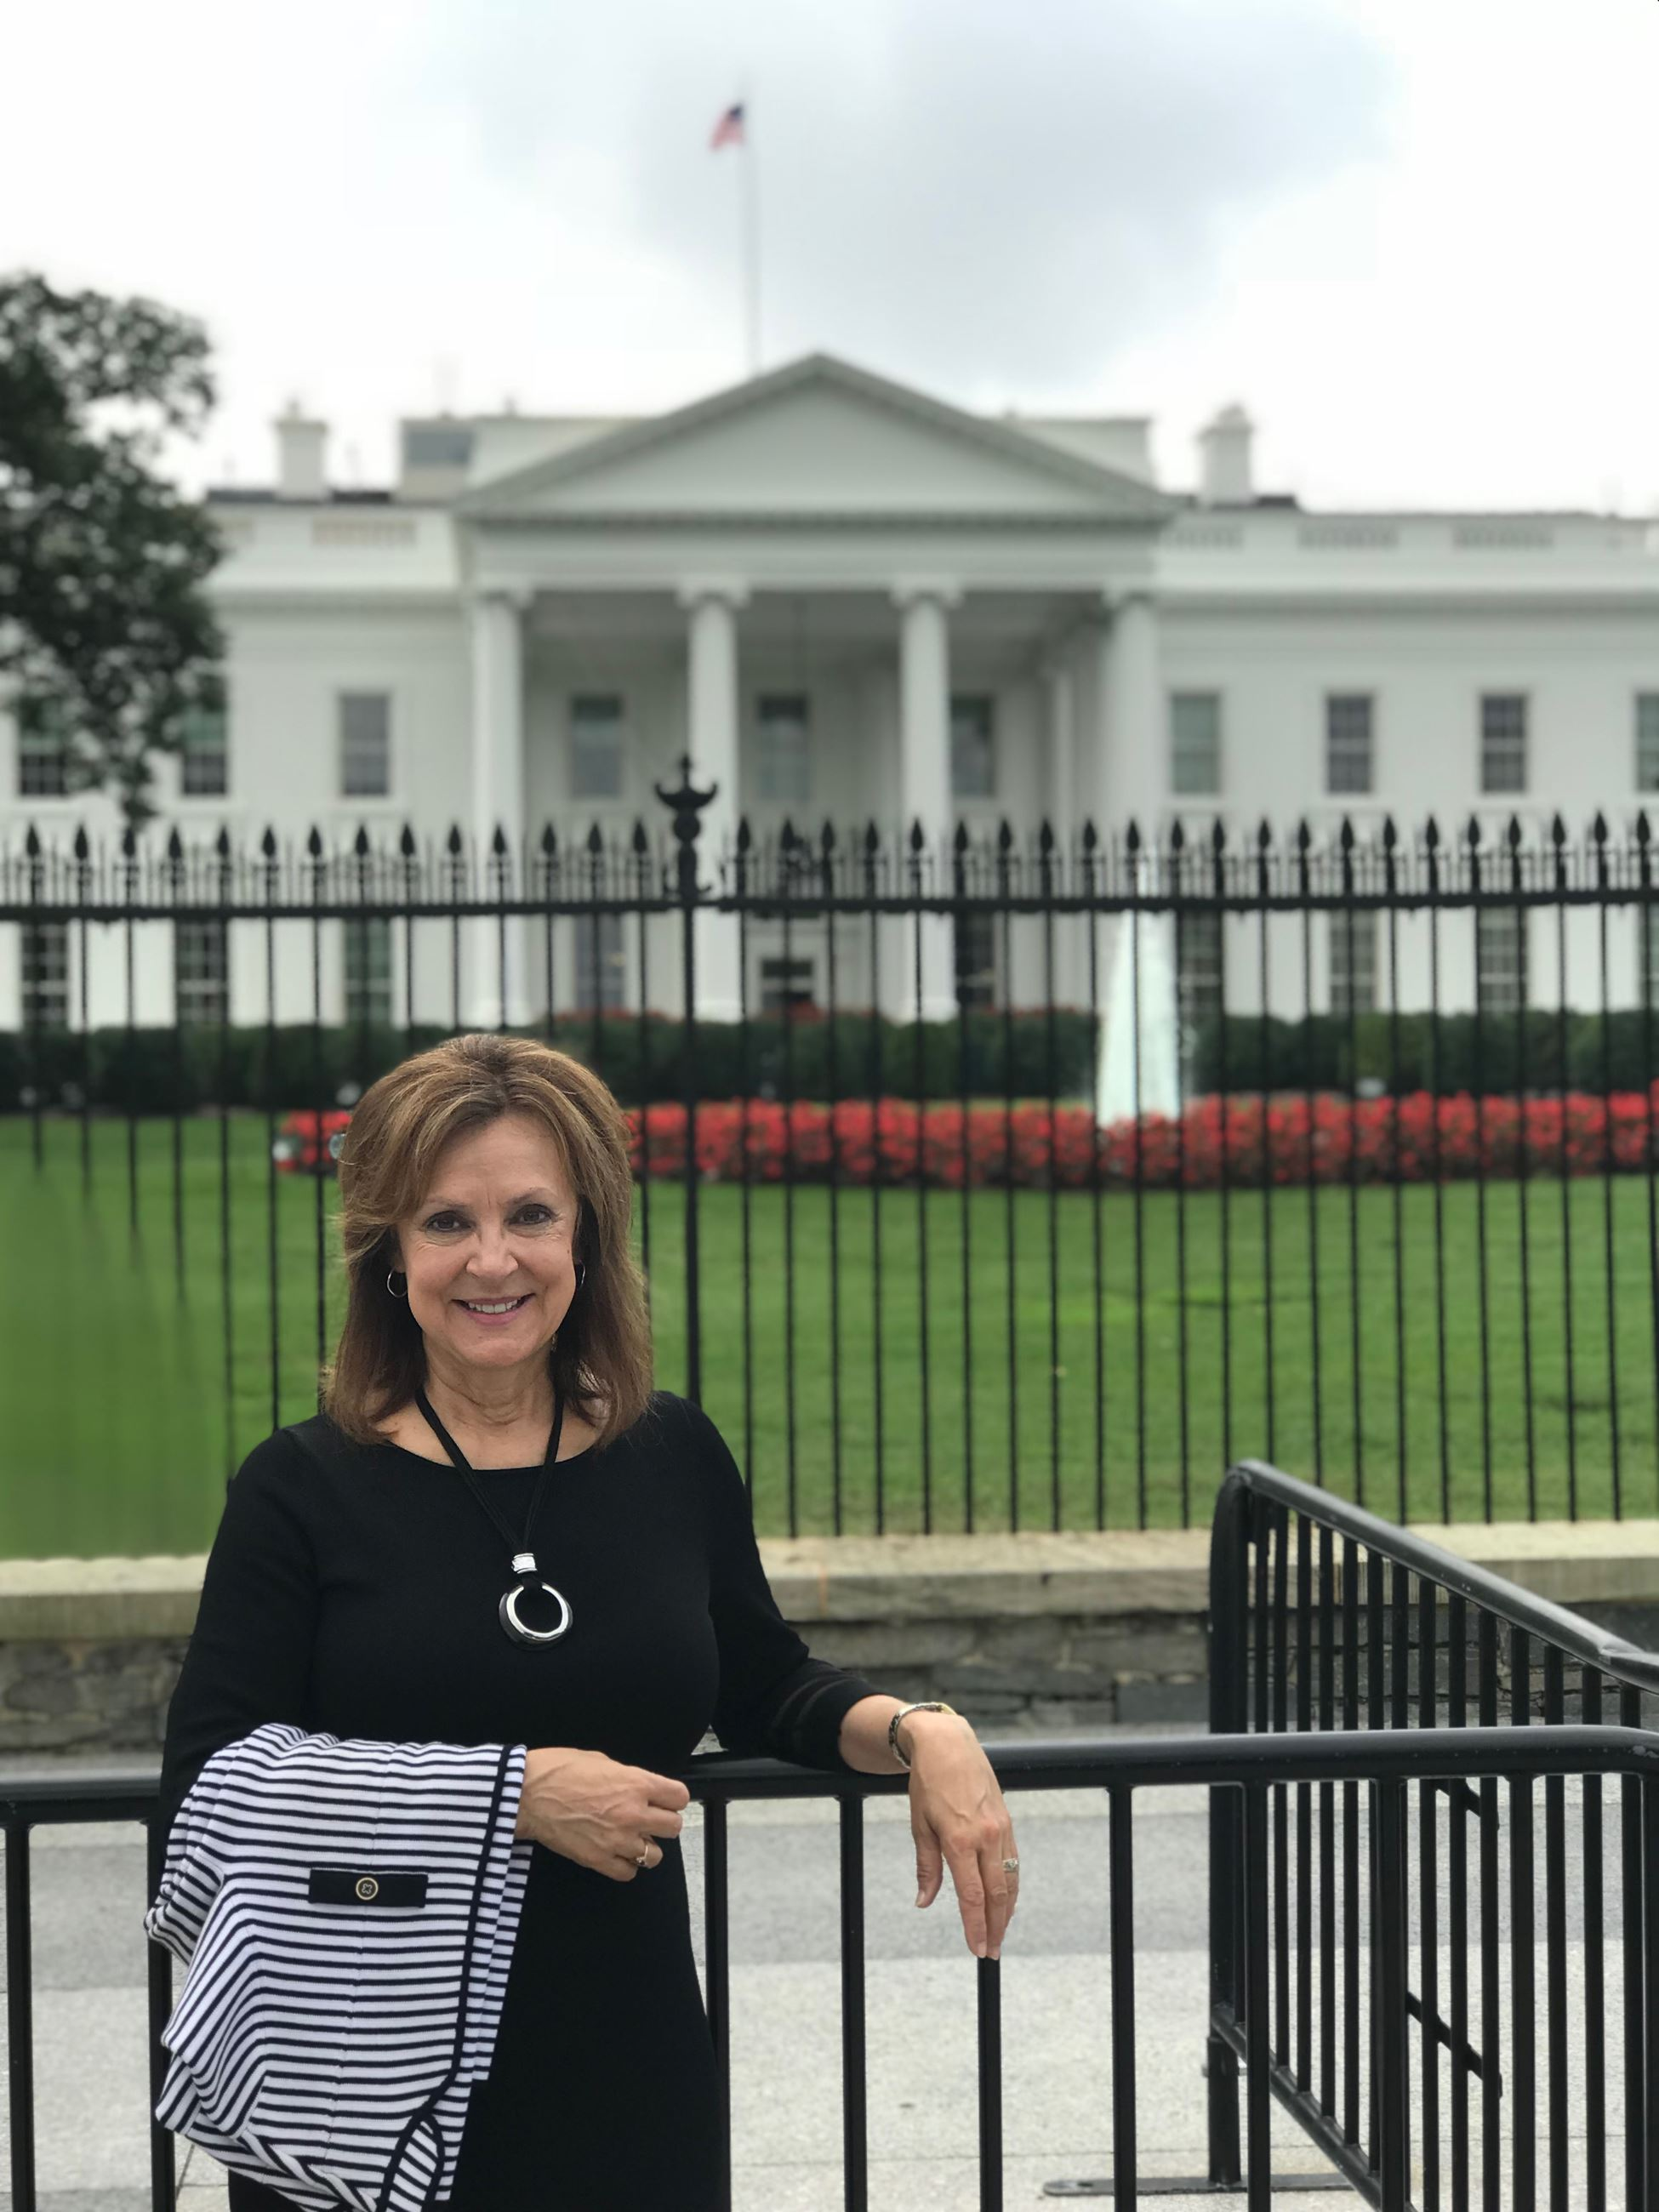 Mayor Kling pictured outside the White House in Washington DC